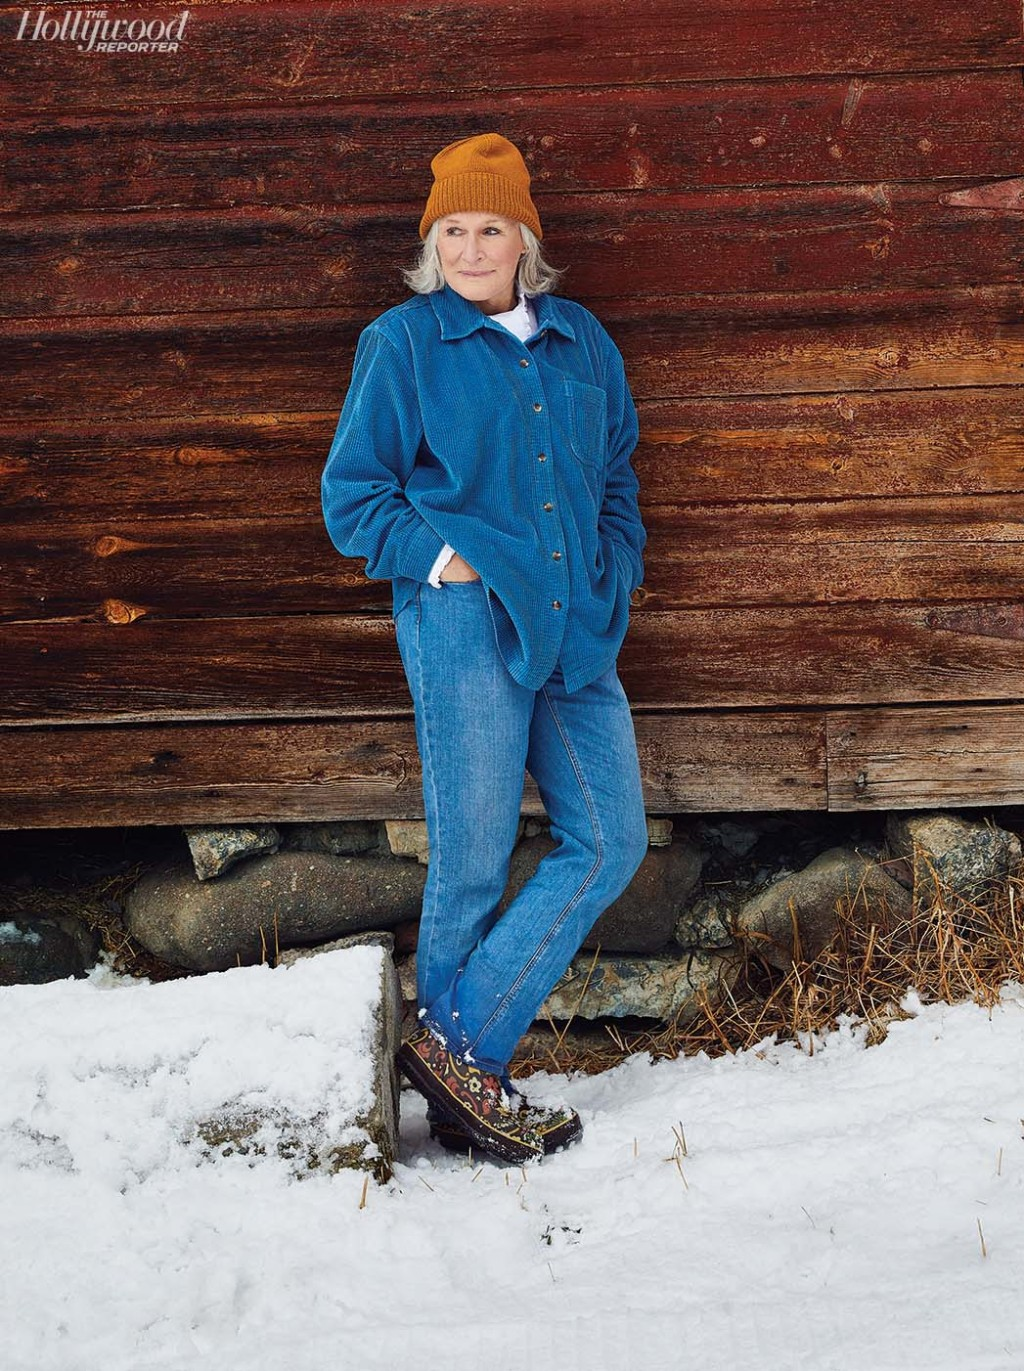 Glenn Close was photographed by Sami Drasin on Dec. 17 in Bozeman, Montana.